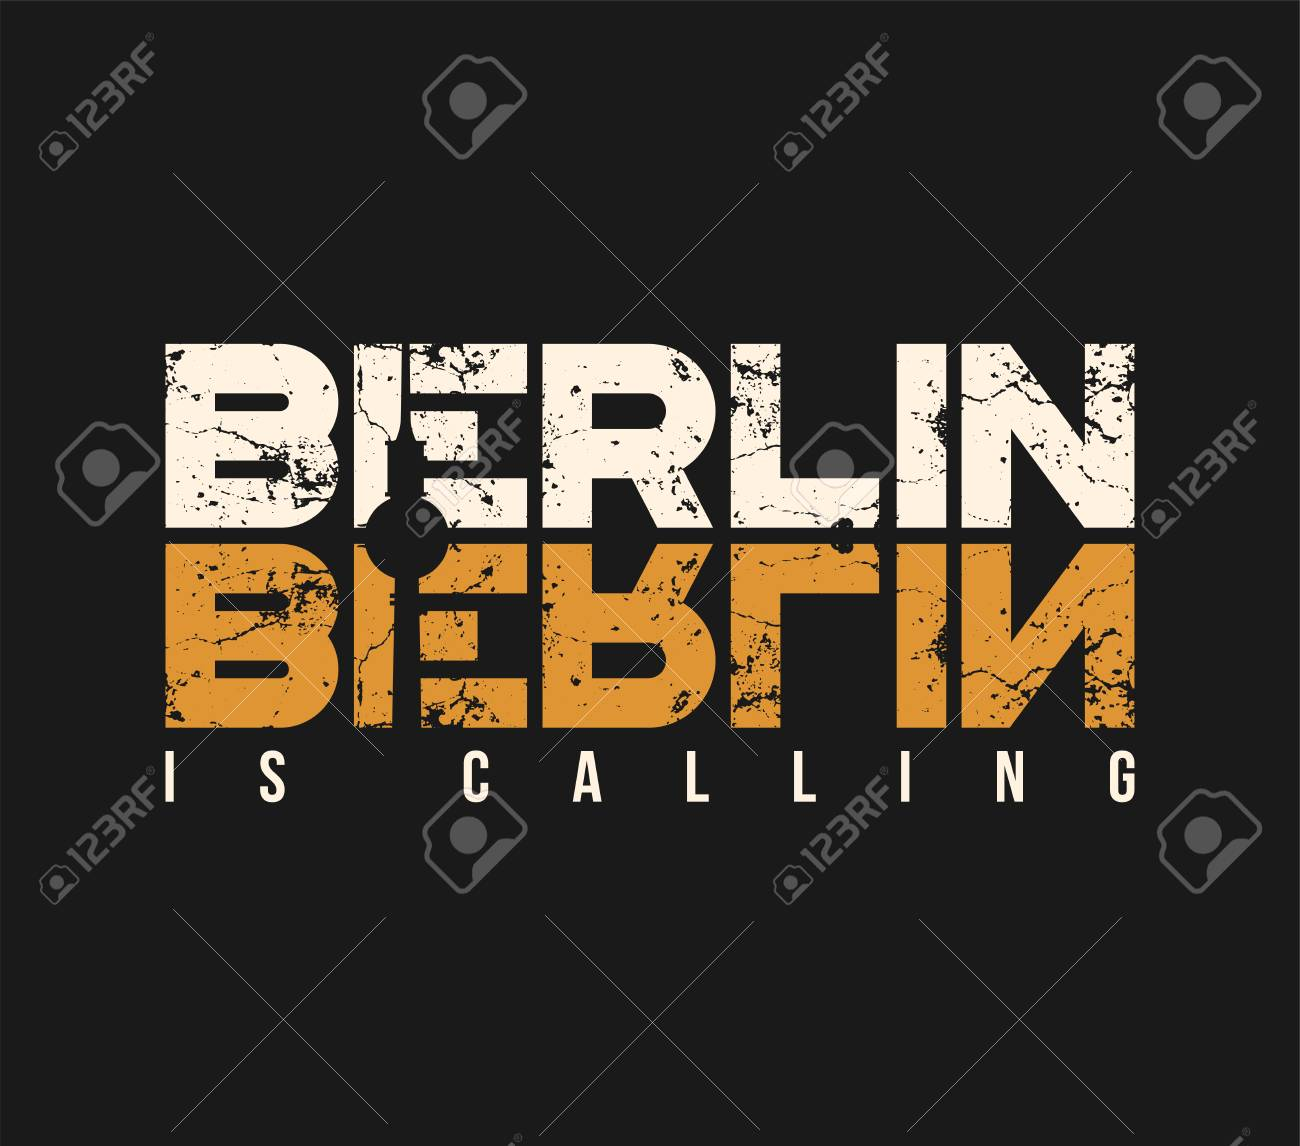 Berlin is calling t-shirt and apparel design with grunge effect. - 90472711